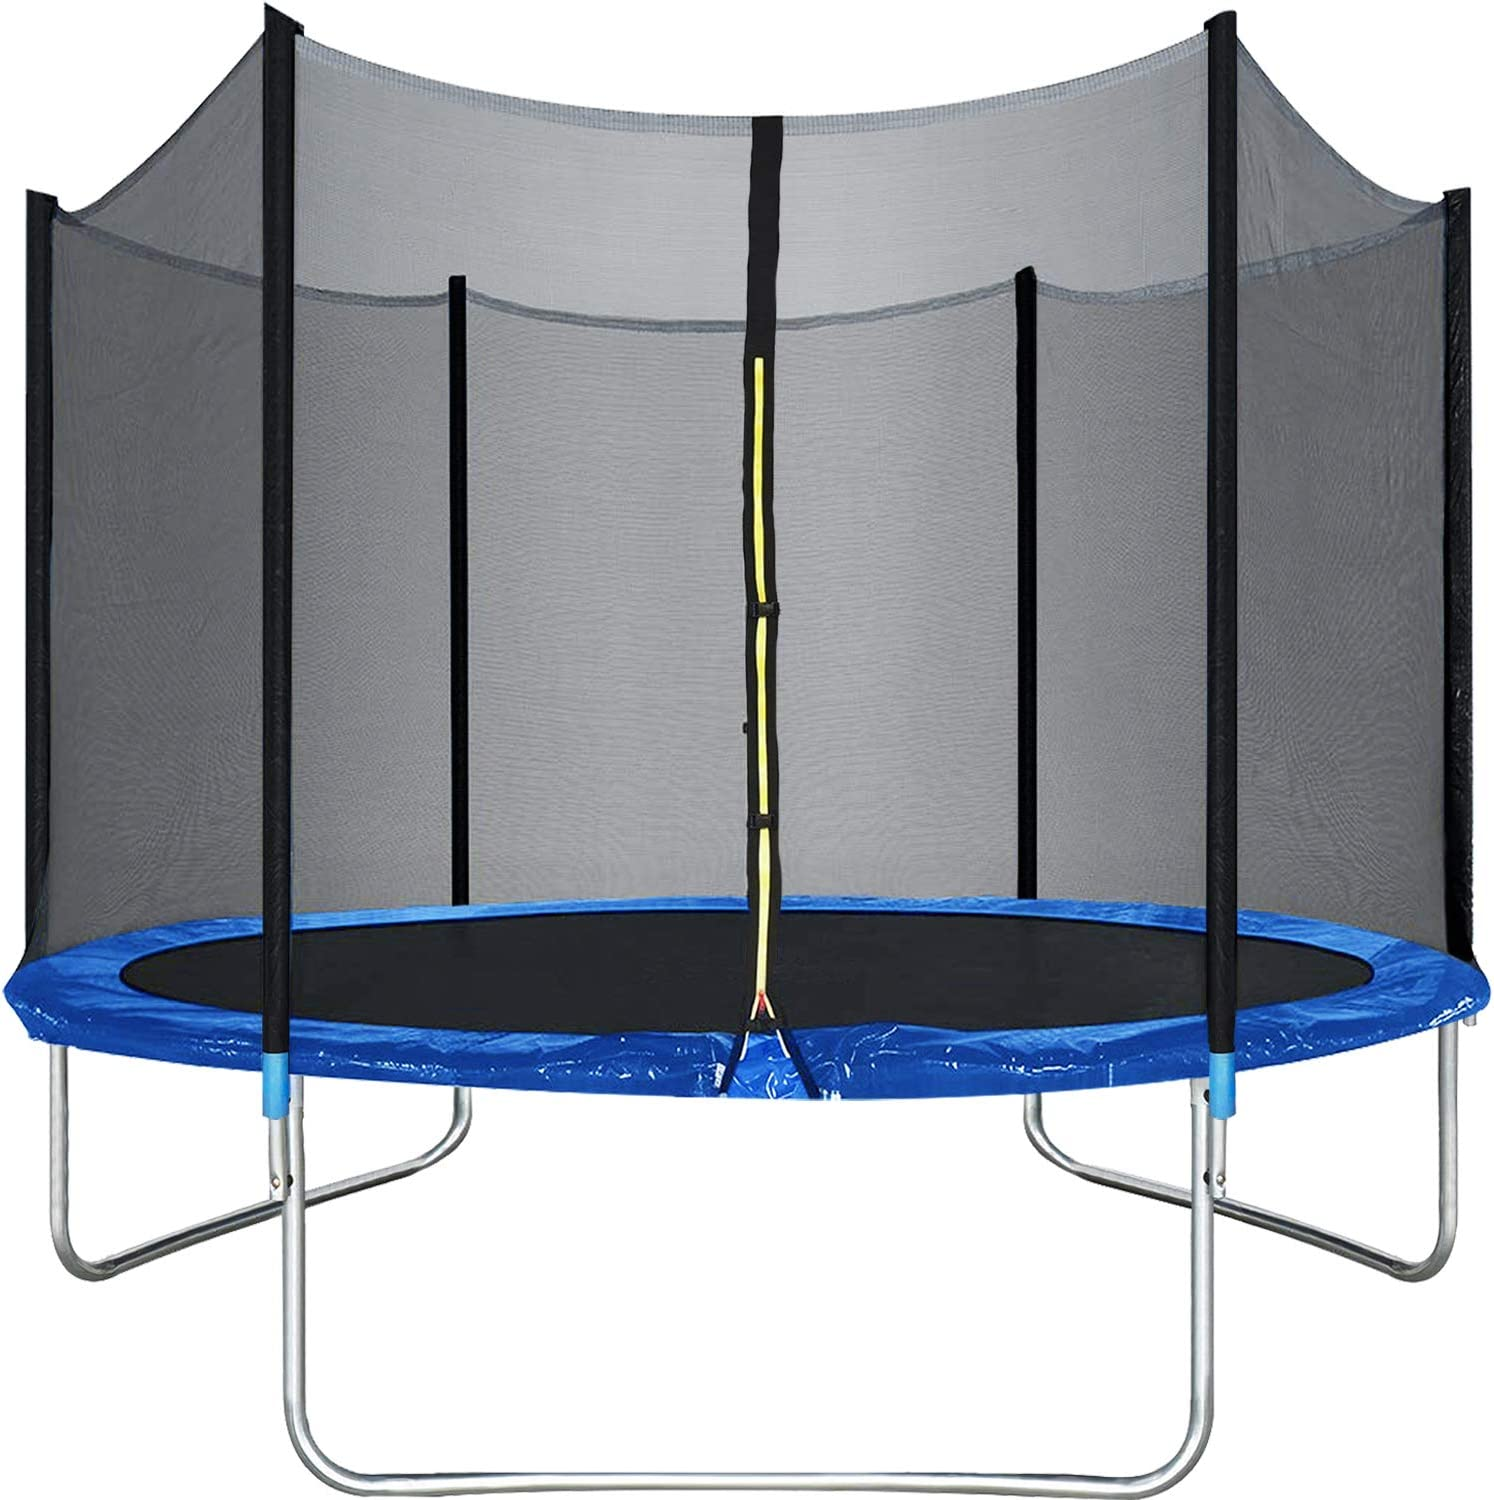 Trampoline Round Jumping Table with Safety Enclosure Net Sping Pad Combo Bounding Bed Trampoline Fitness Equipment